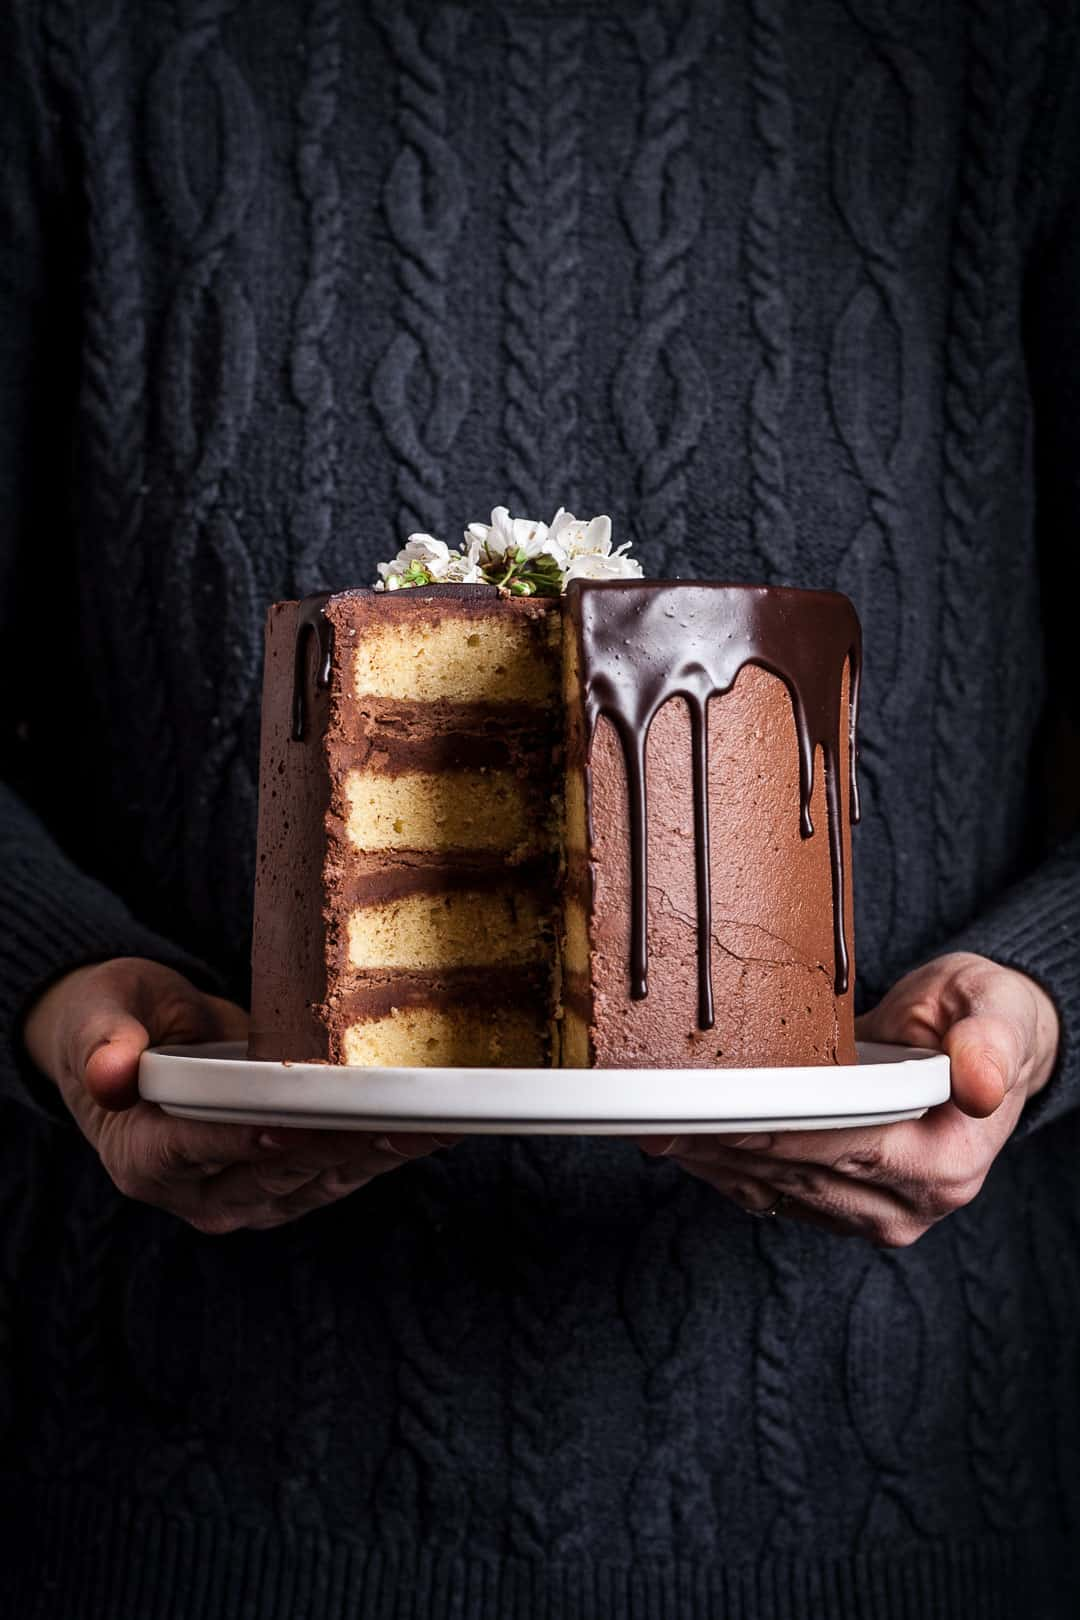 closeup of yellow marzipan cake with dark chocolate buttercream with a slice missing, on a white platter being held by a person wearing a navy blue cable knit sweater